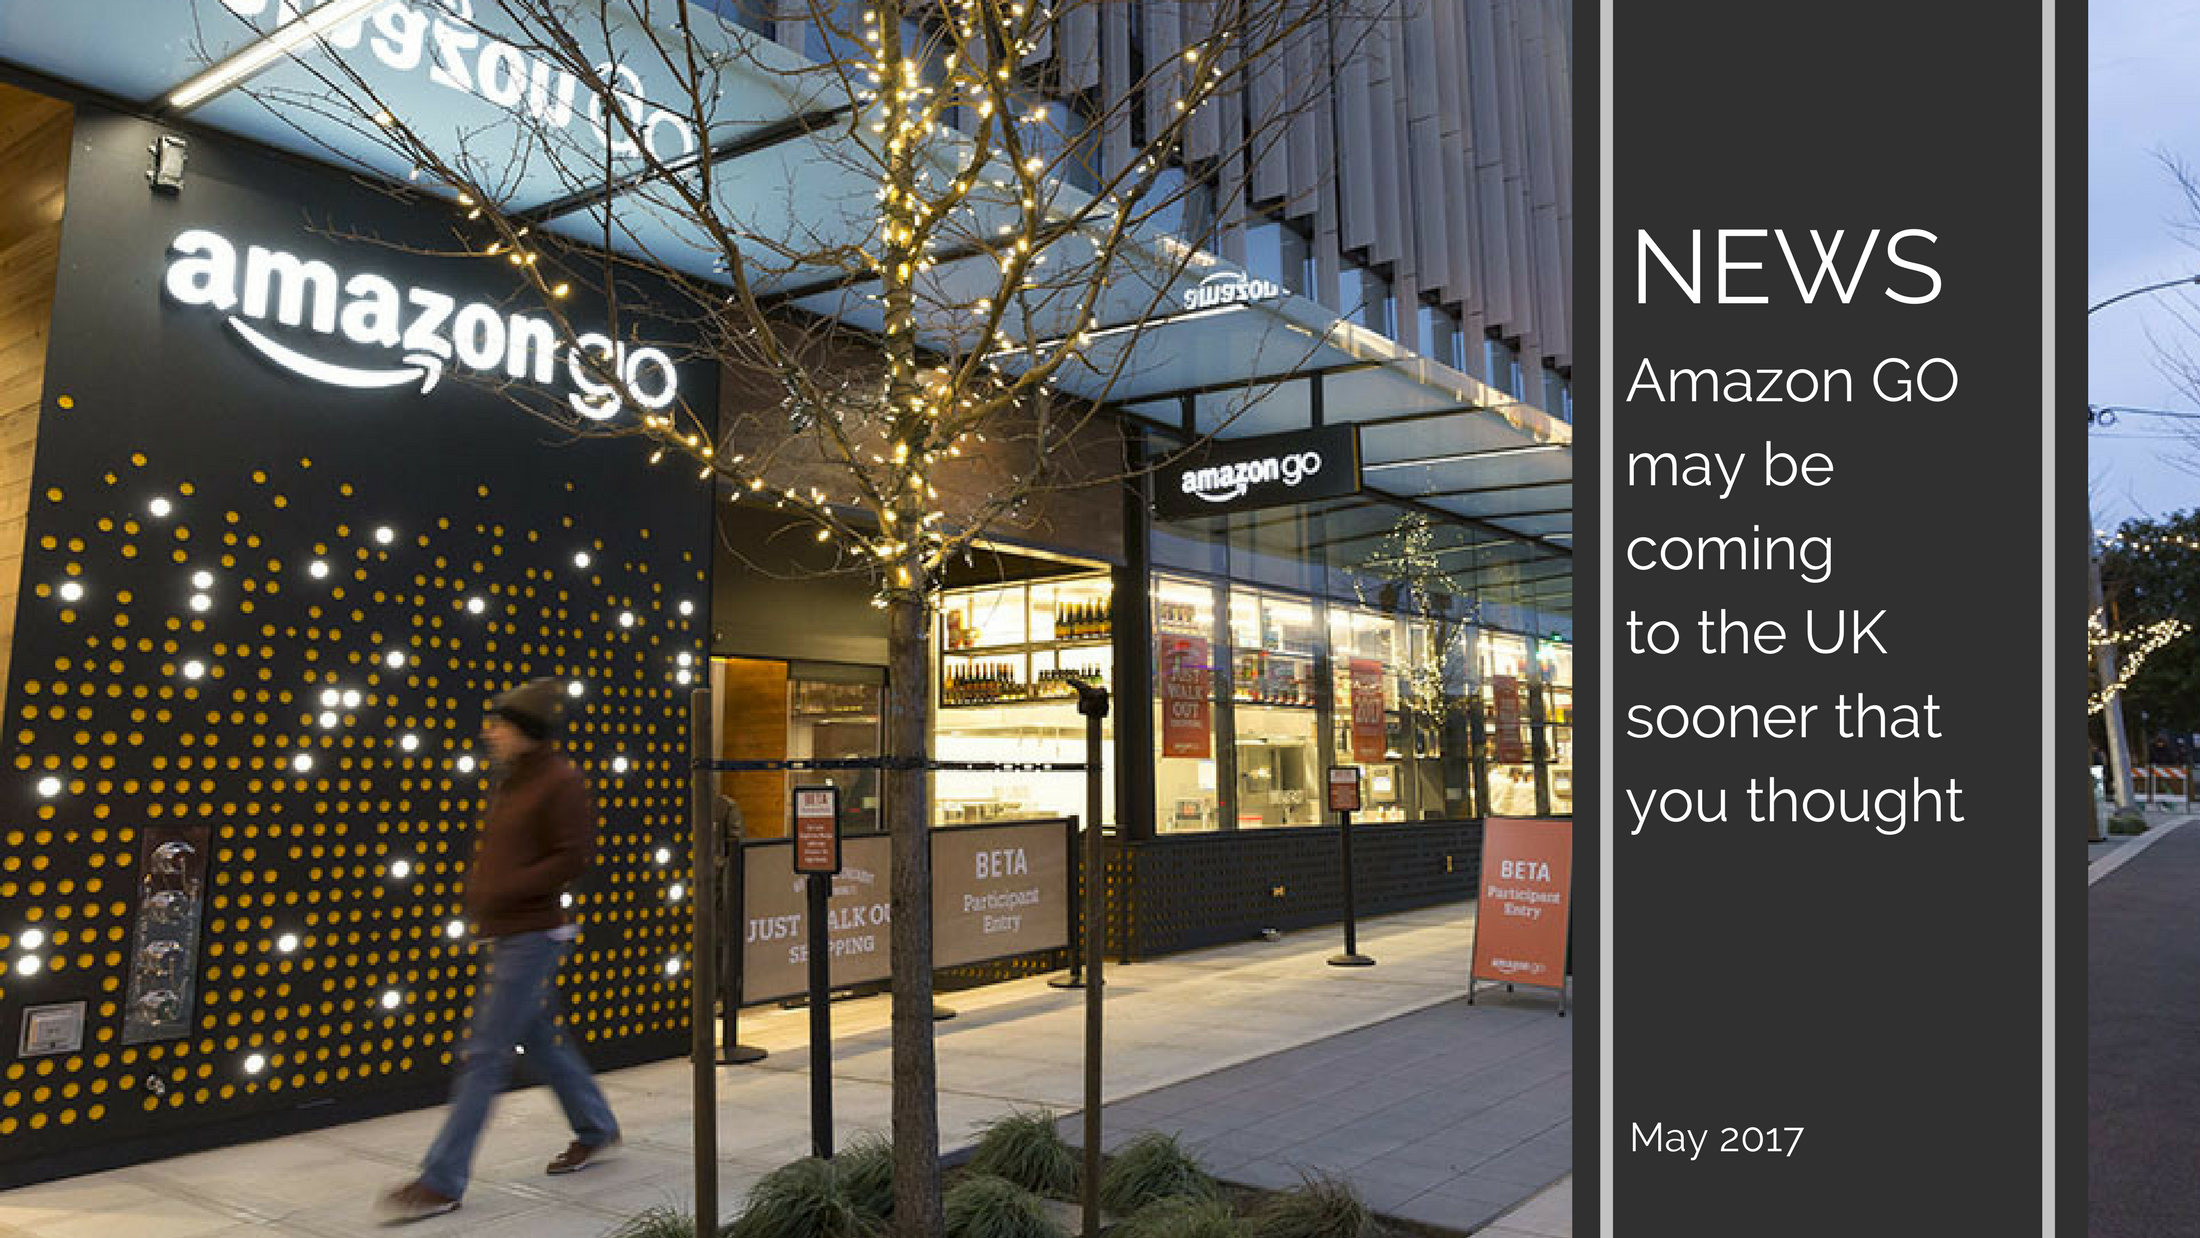 Trends News 9 - Amazon Go may be coming to the UK sooner that you thought